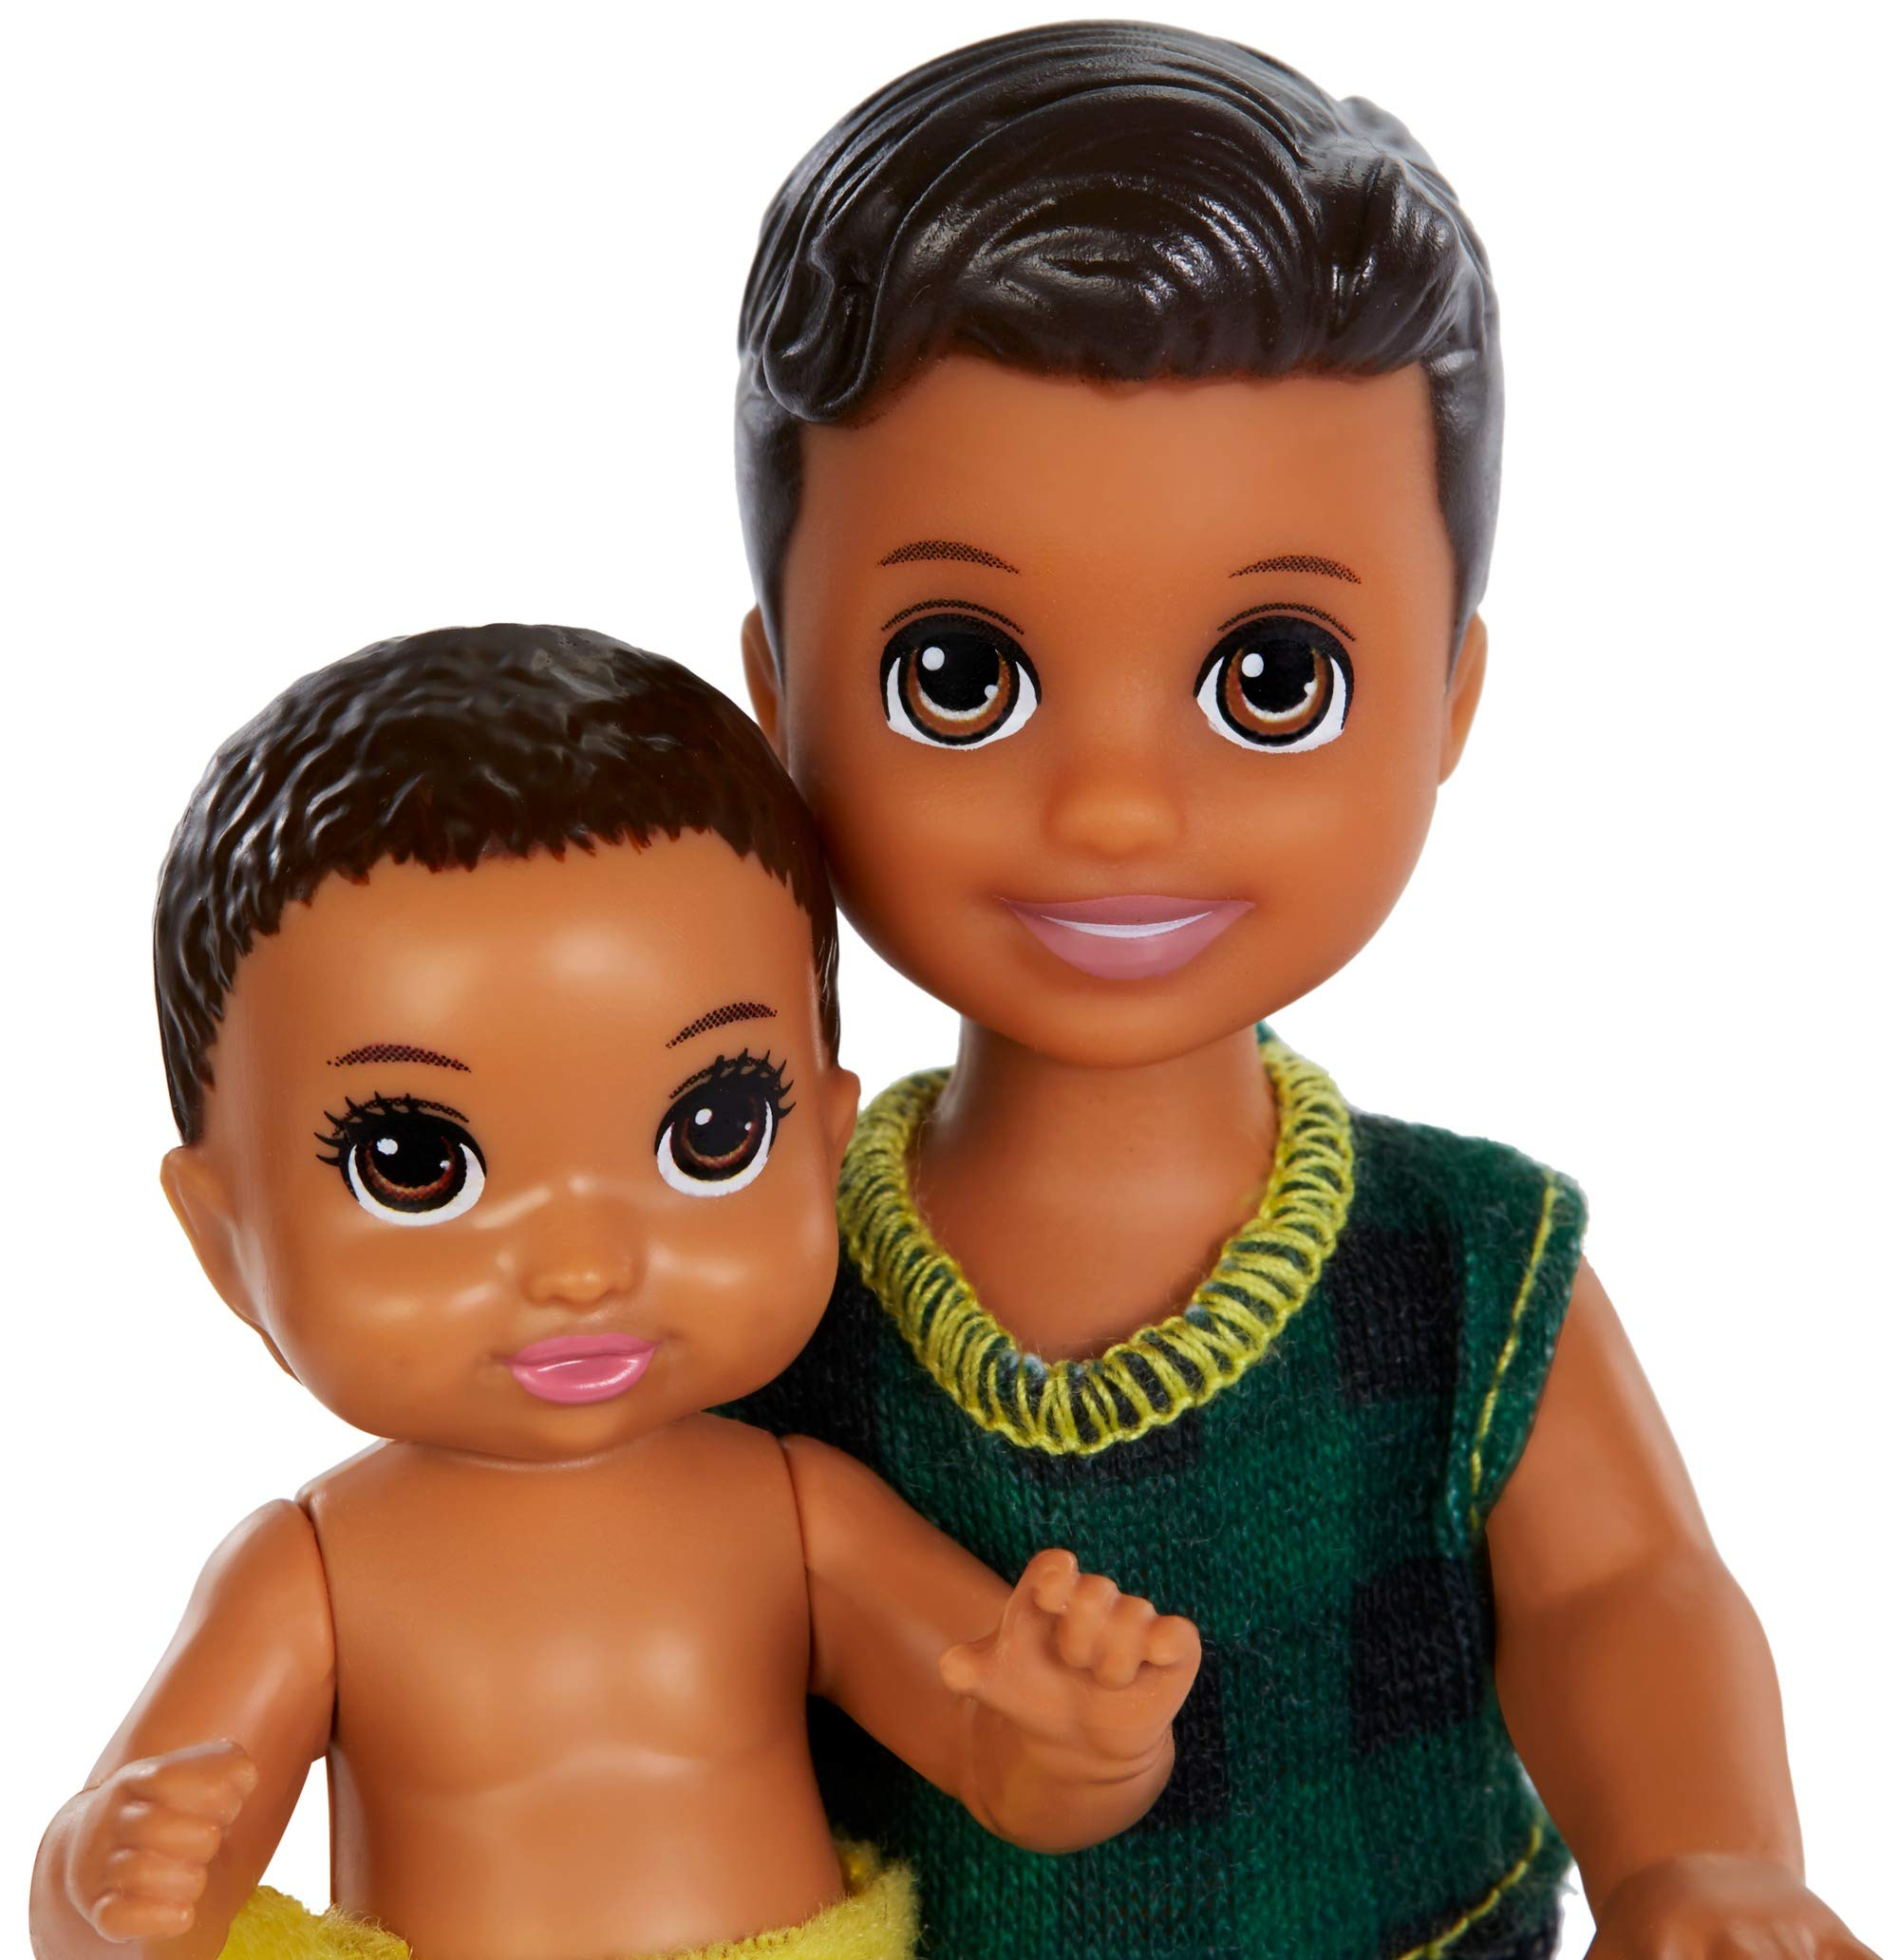 Barbie Skipper Babysitters Inc Dolls Buy Online In Suriname At Desertcart